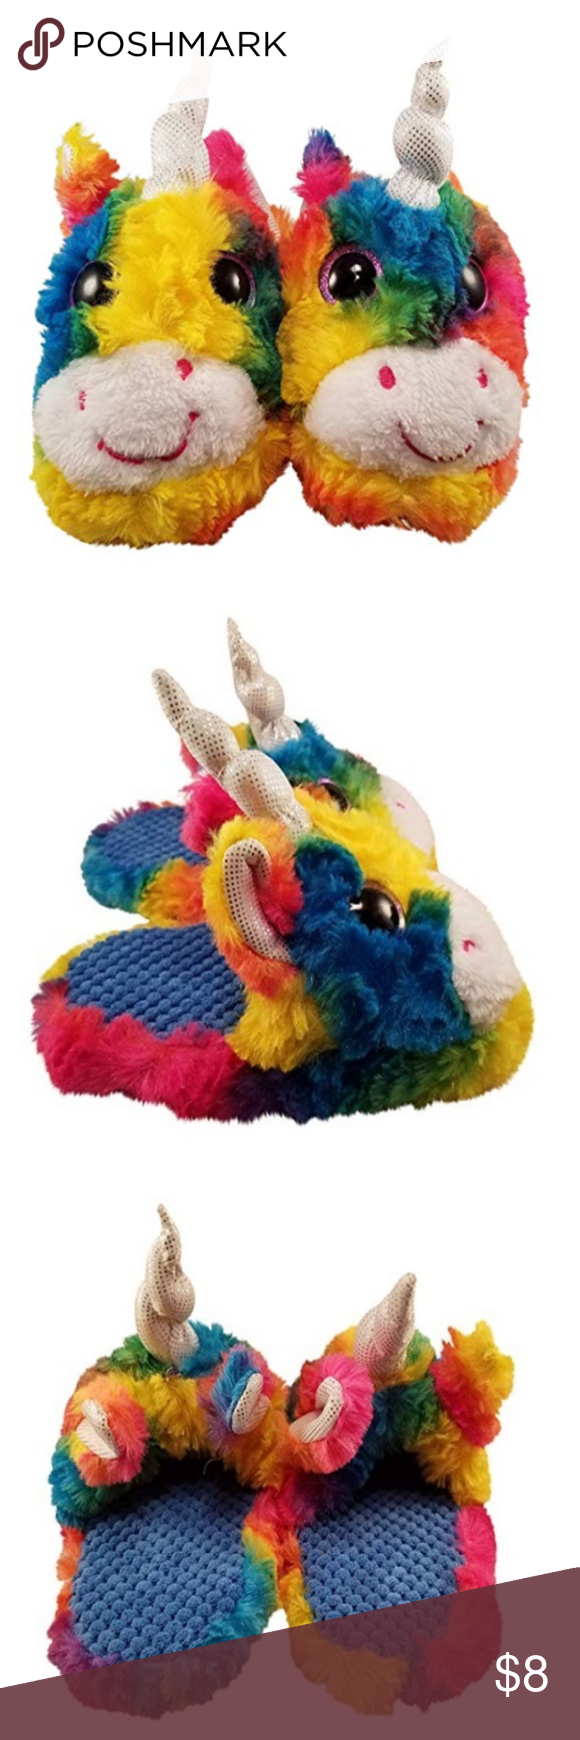 Unicorn Slippers for Girls with Rainbow Colors and Big Eyes